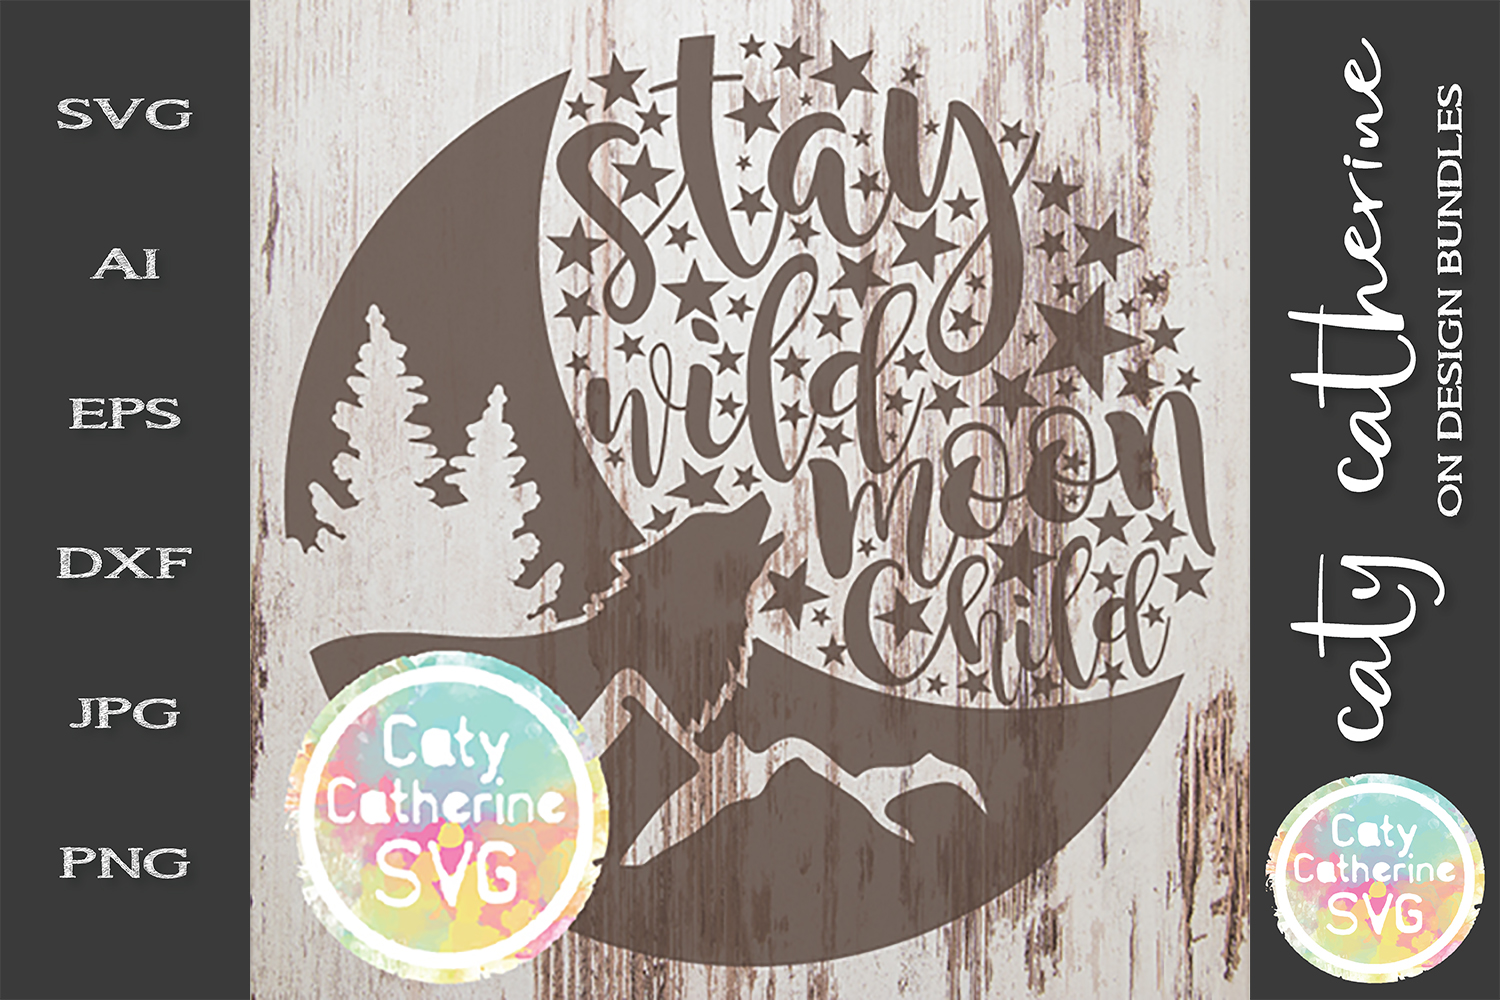 Stay Wild Moon Child SVG Cut File example image 1